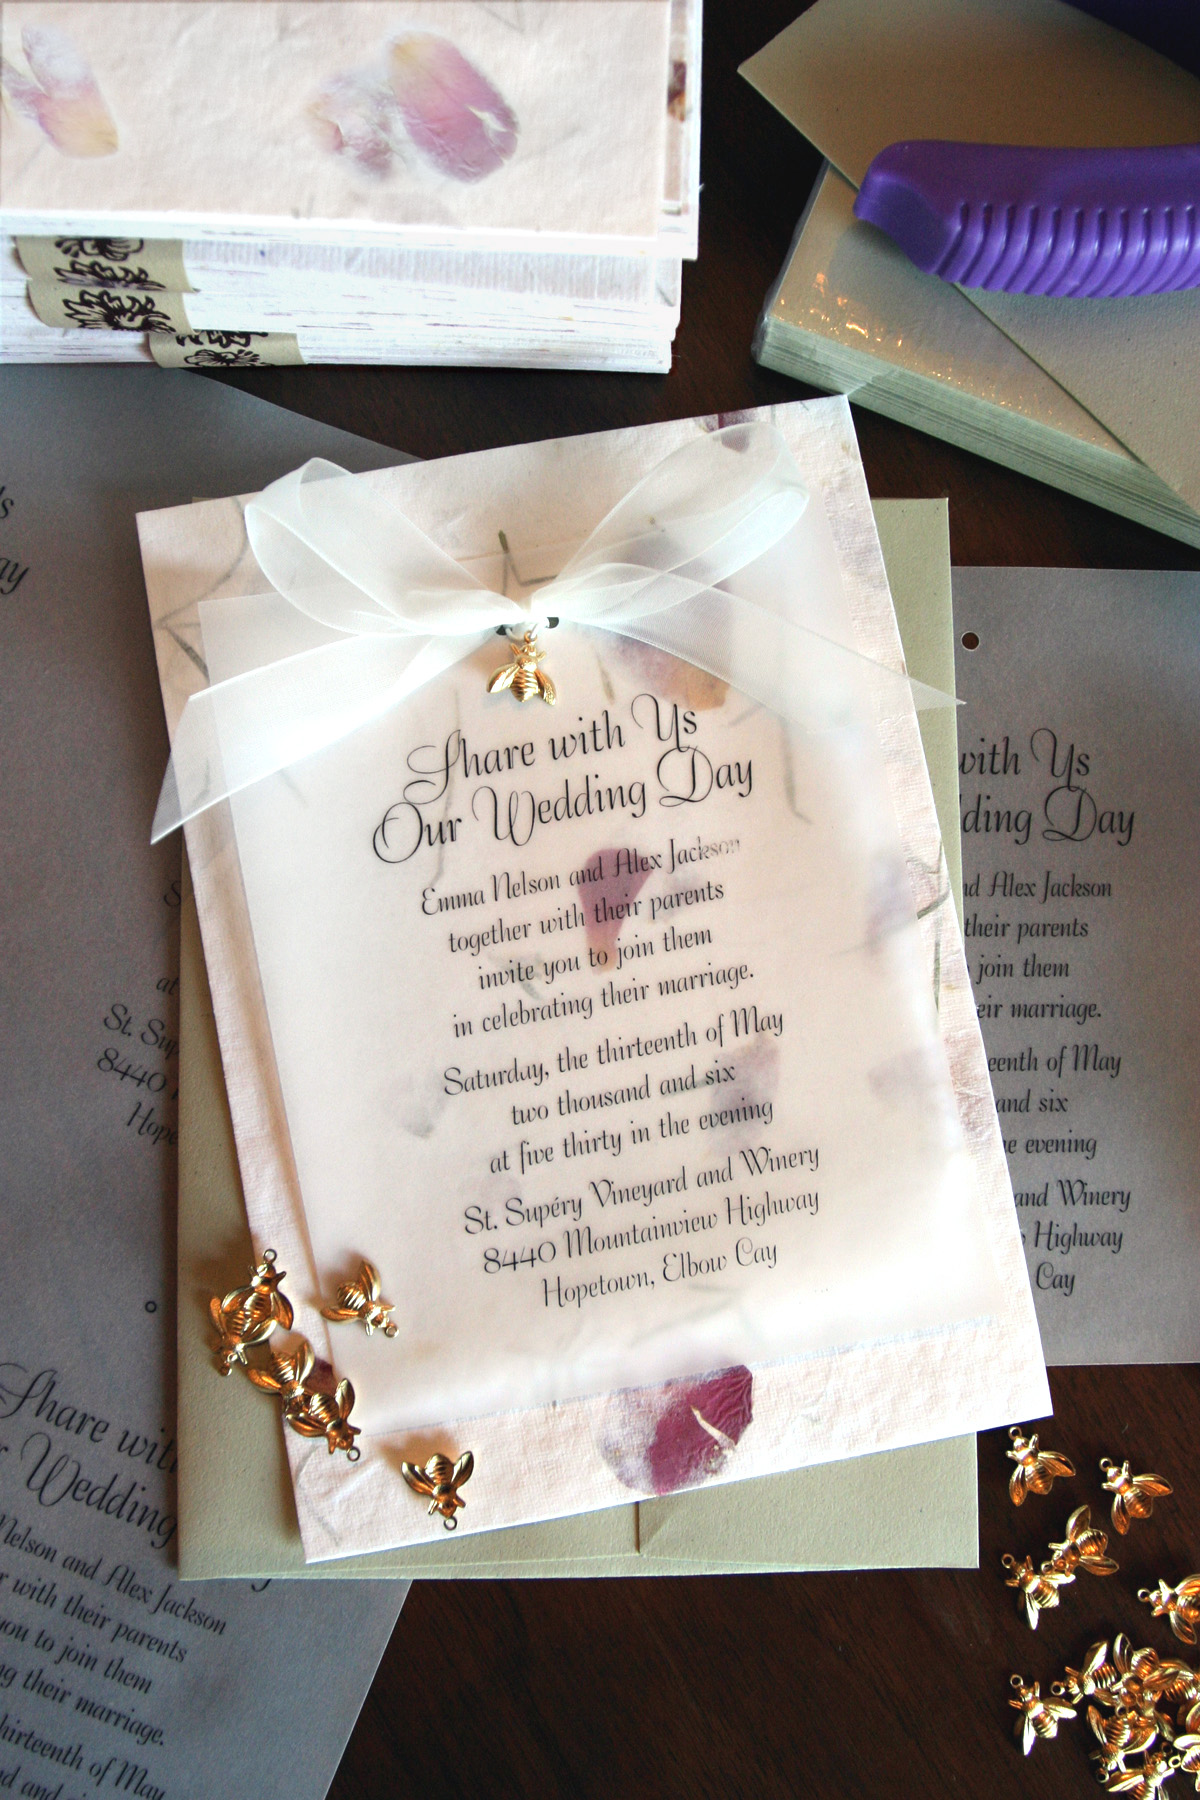 prweb wedding invitation paper Petal Paper Wedding Invitation with Bee CharmSample of rose petal paper wedding invitation with sheer ribbon and bee charm